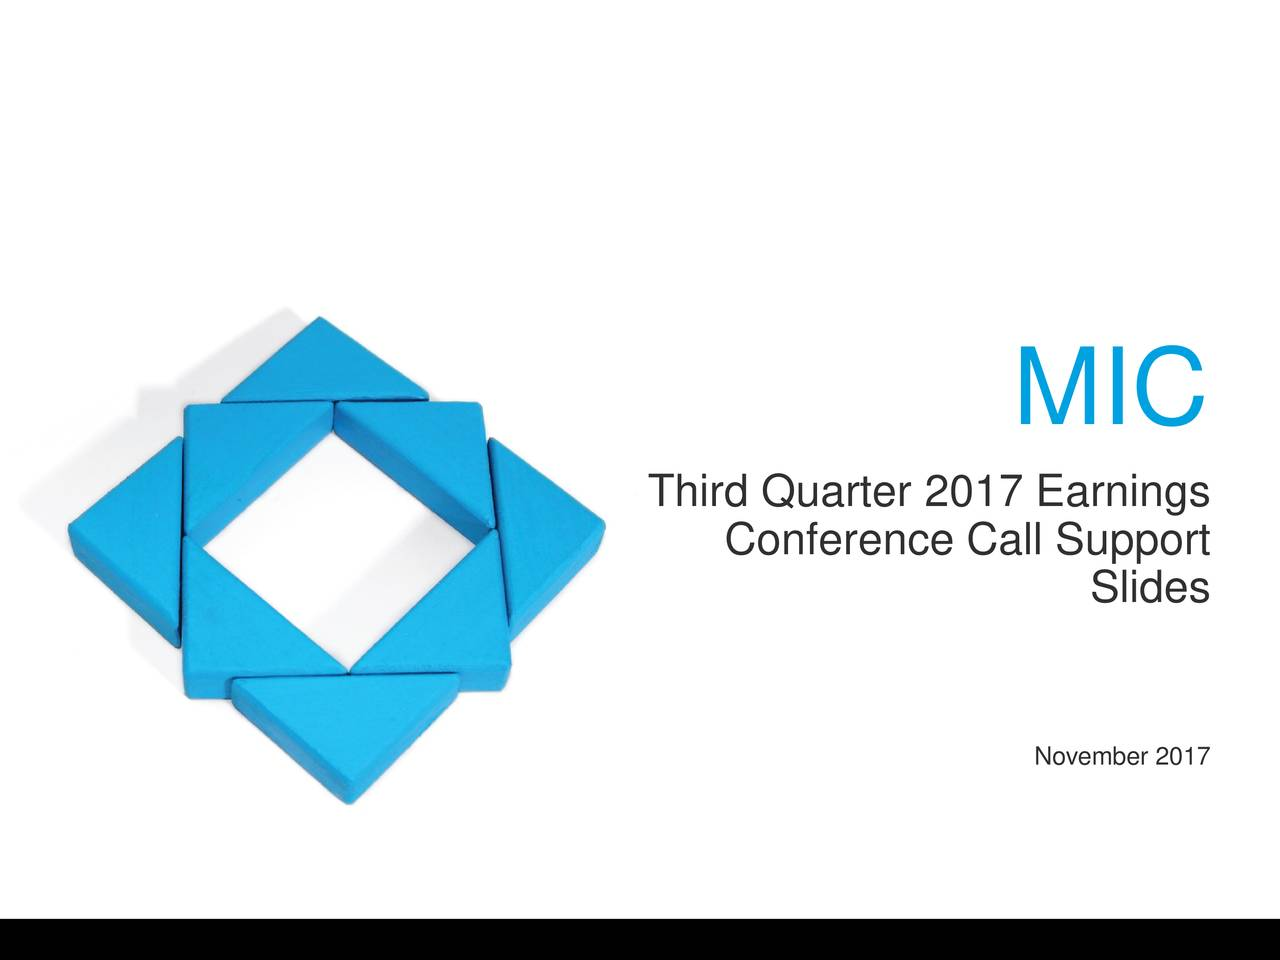 Third Quarter 2017 Earnings Conference Call Support Slides November 2017